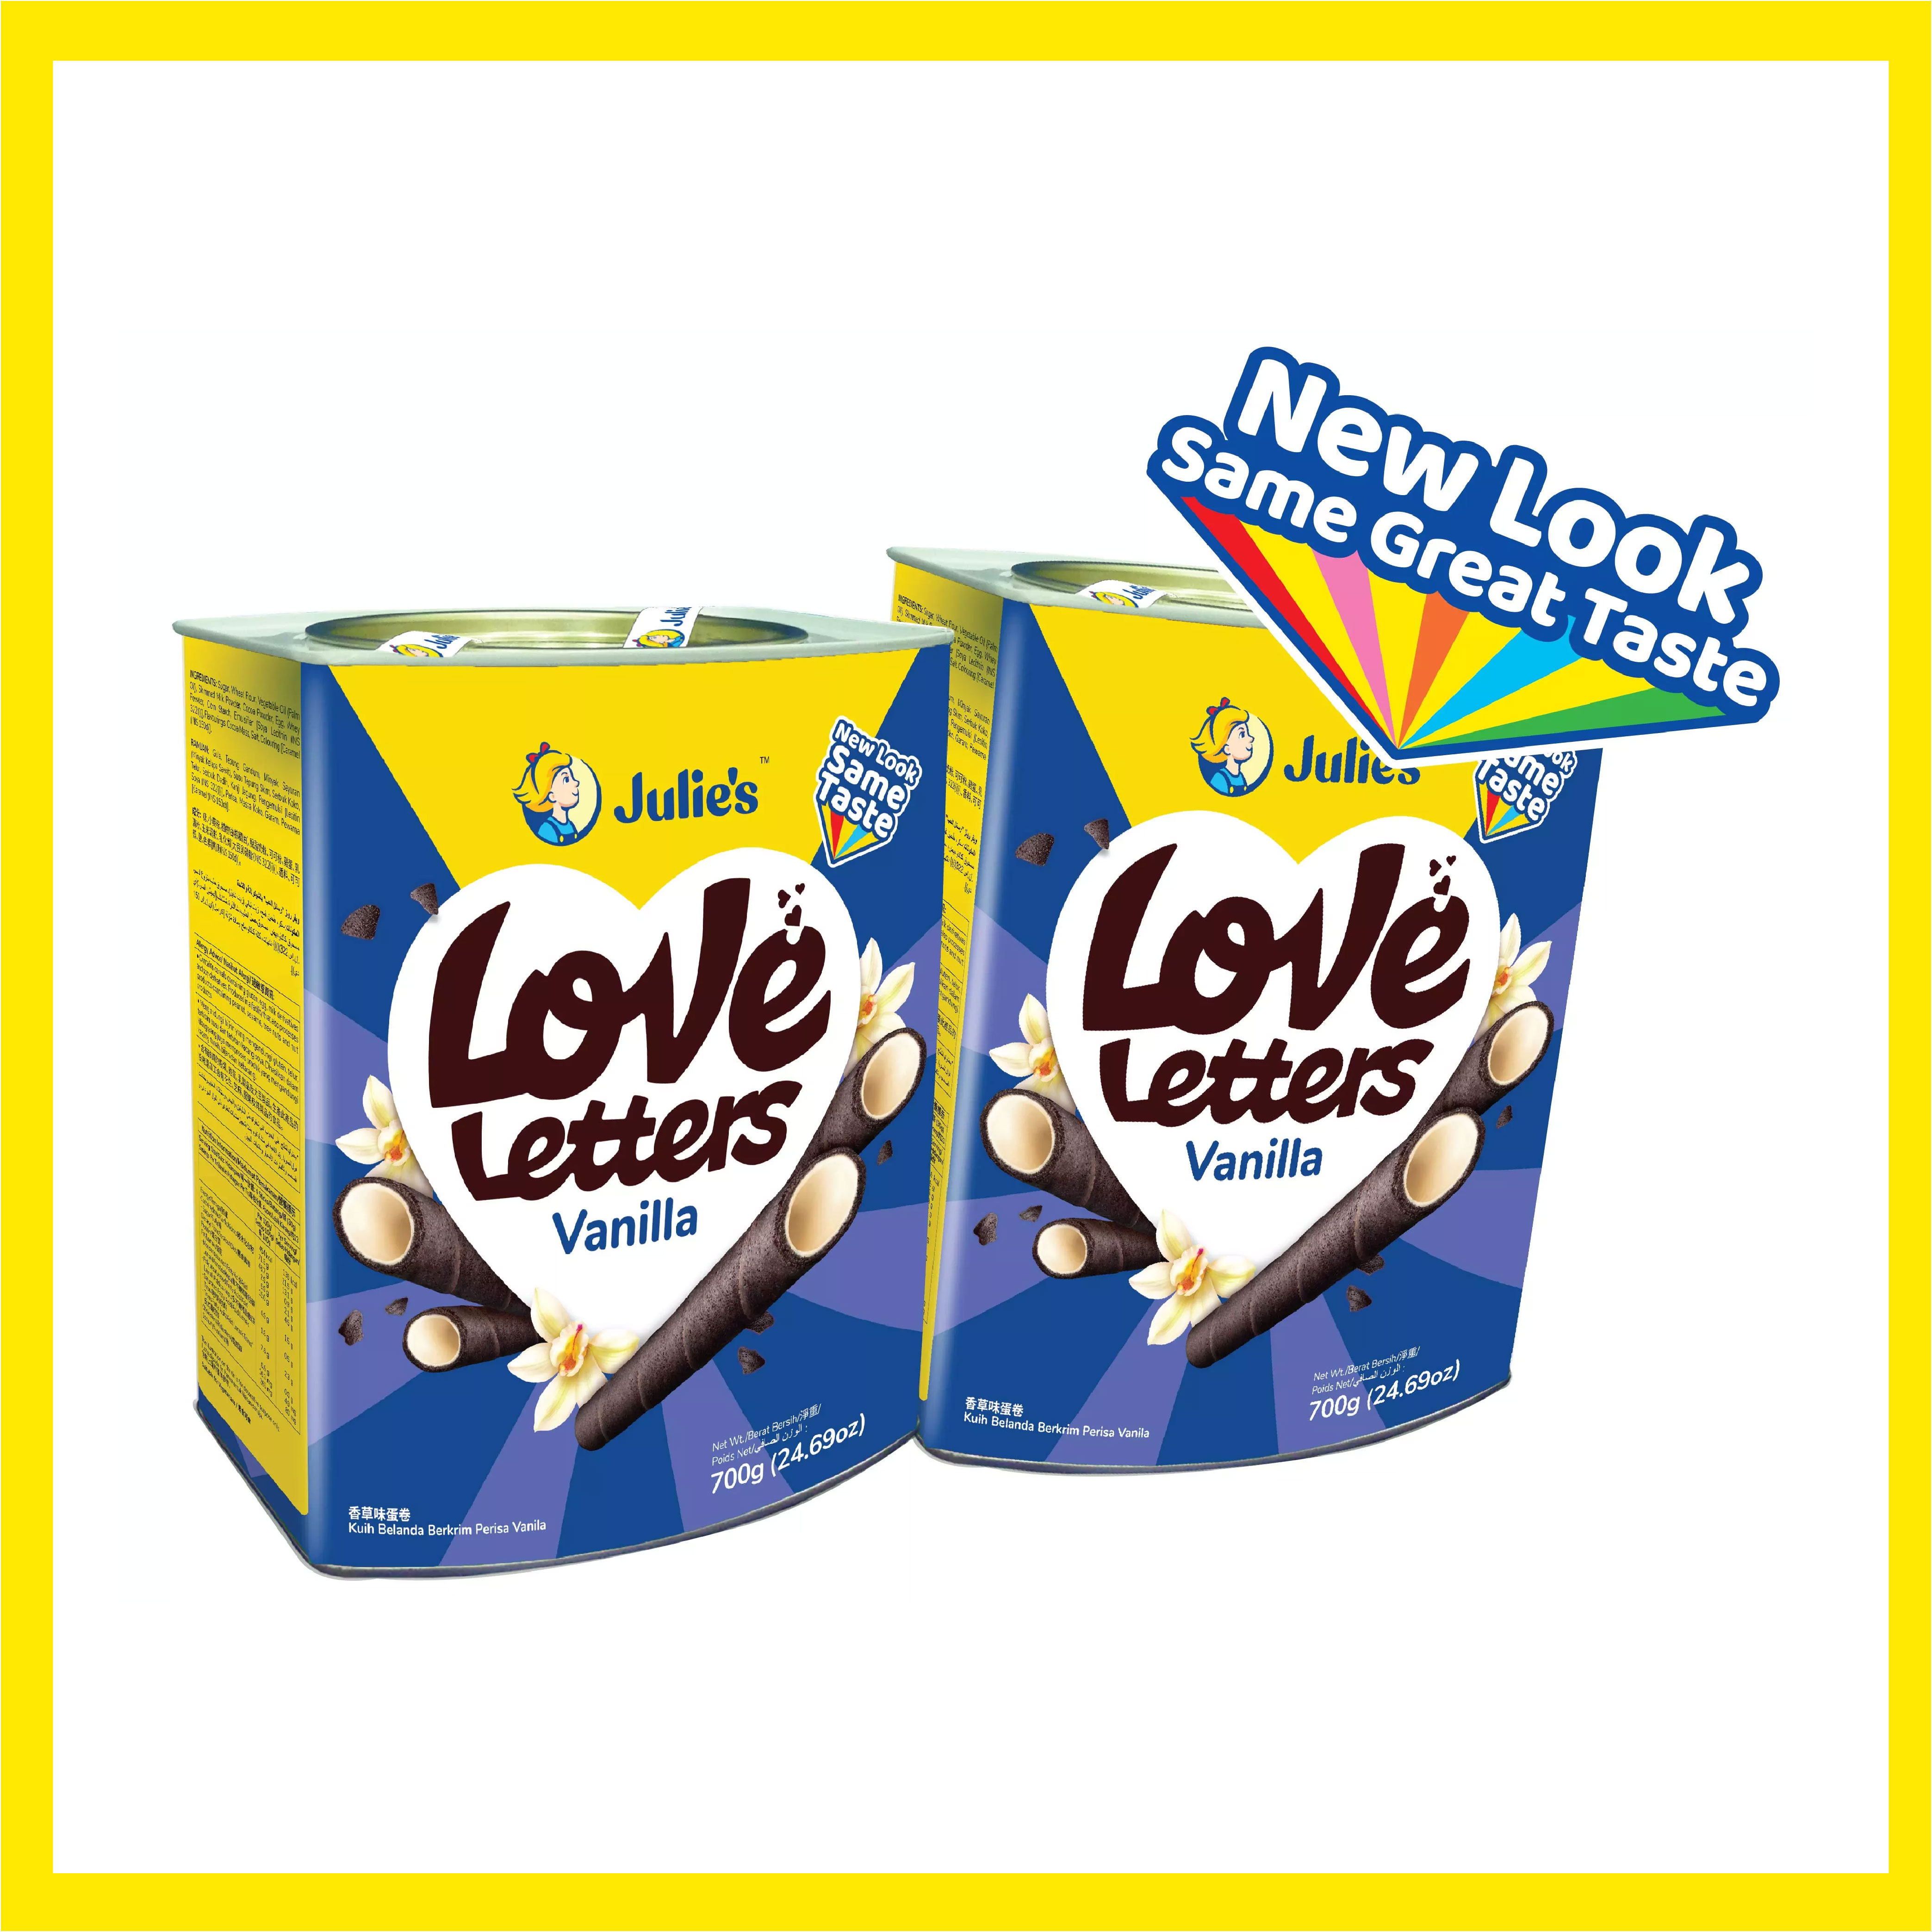 Julie's Love Letters Vanilla 700g x 2 tins [Inner Pack Online Exclusive]